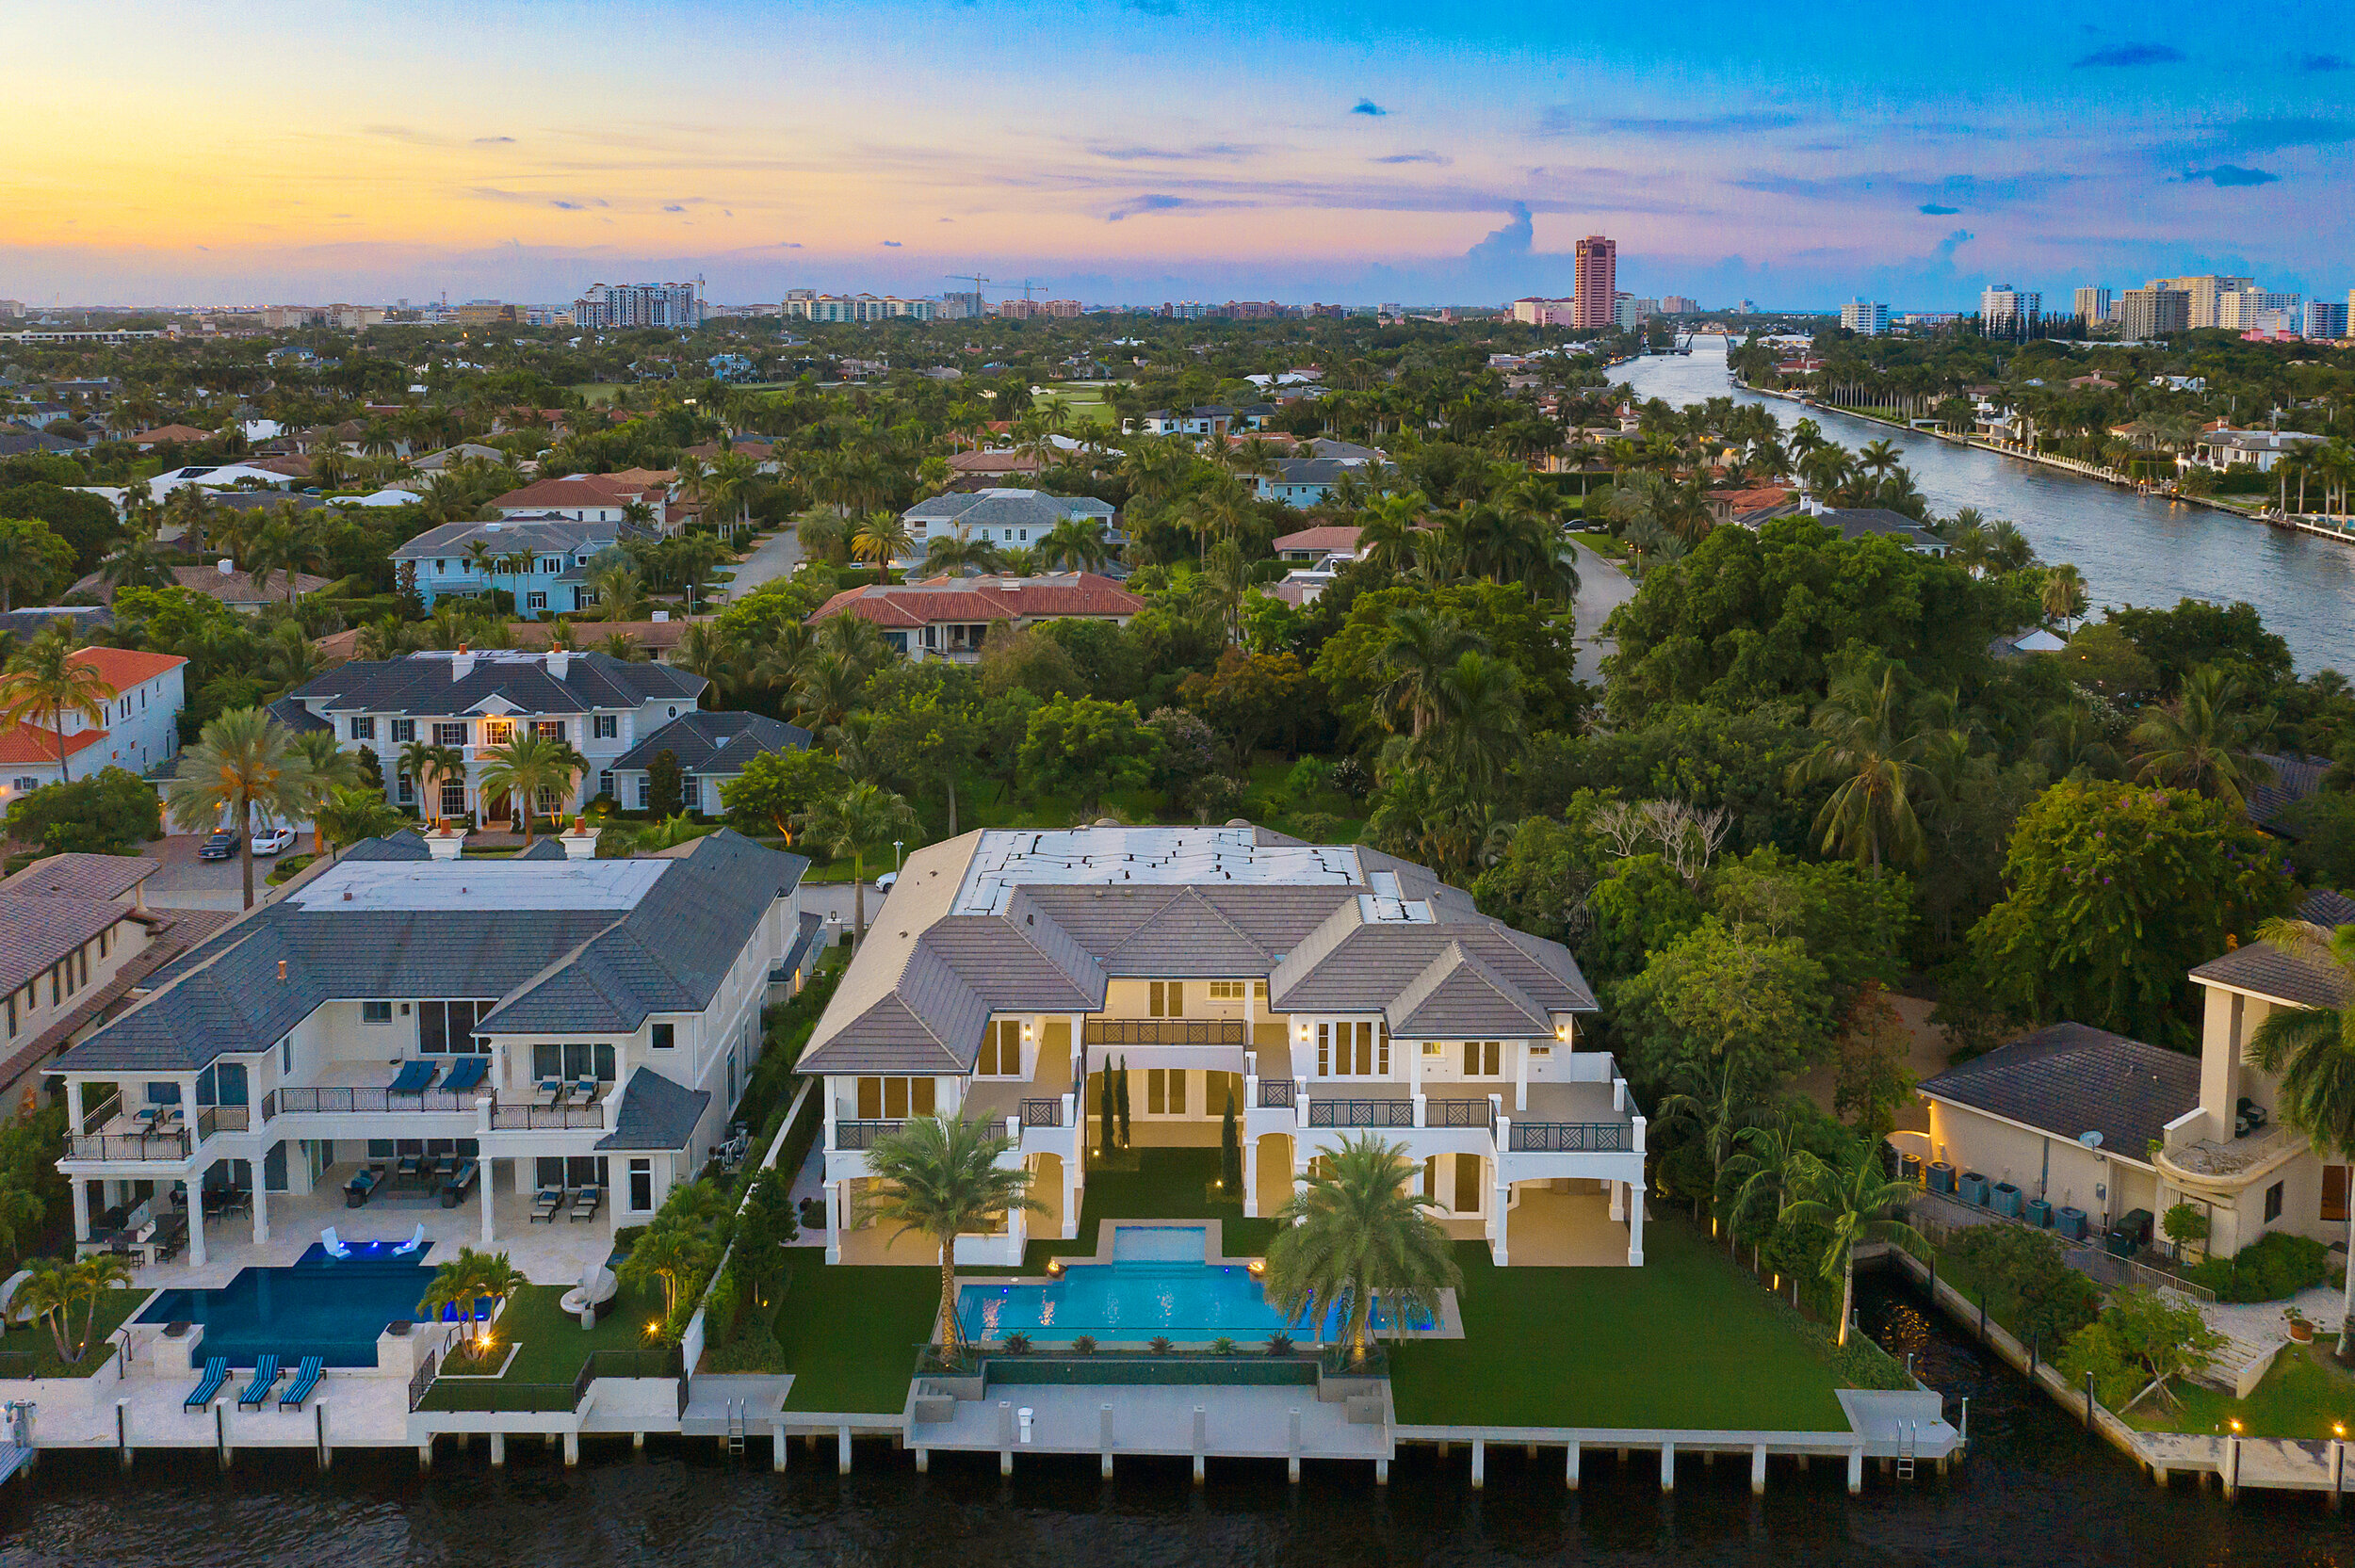 Luxury waterfront, premium homesites, and a 20-year track record of stellar service, before and after sale.